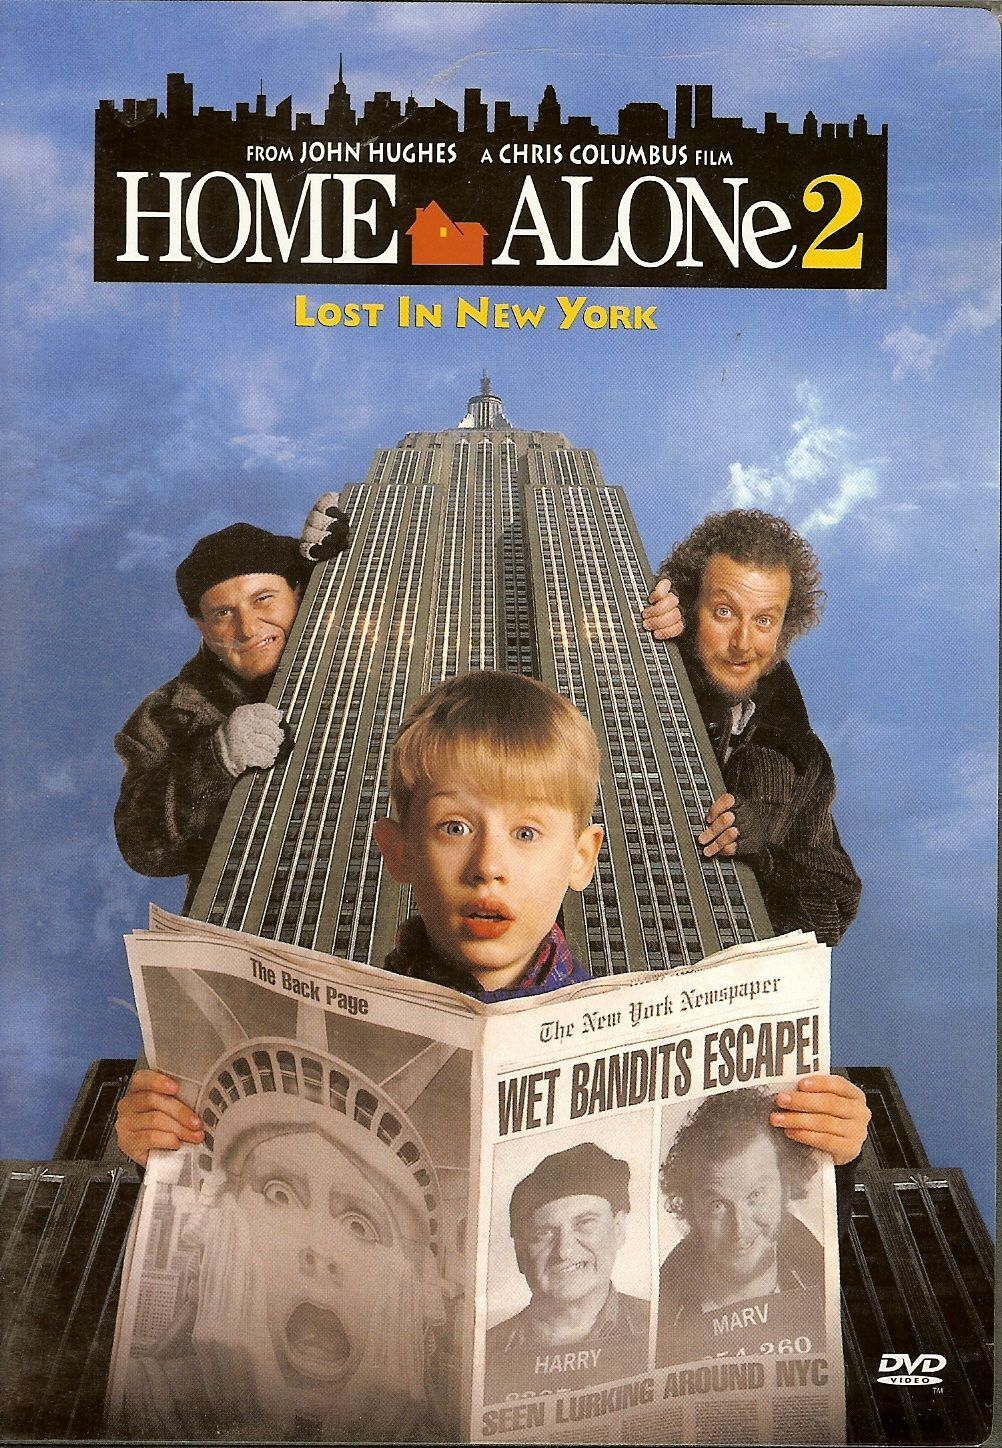 Home Alone 2 I Remember Seeing This In The Movie Theater Visiting